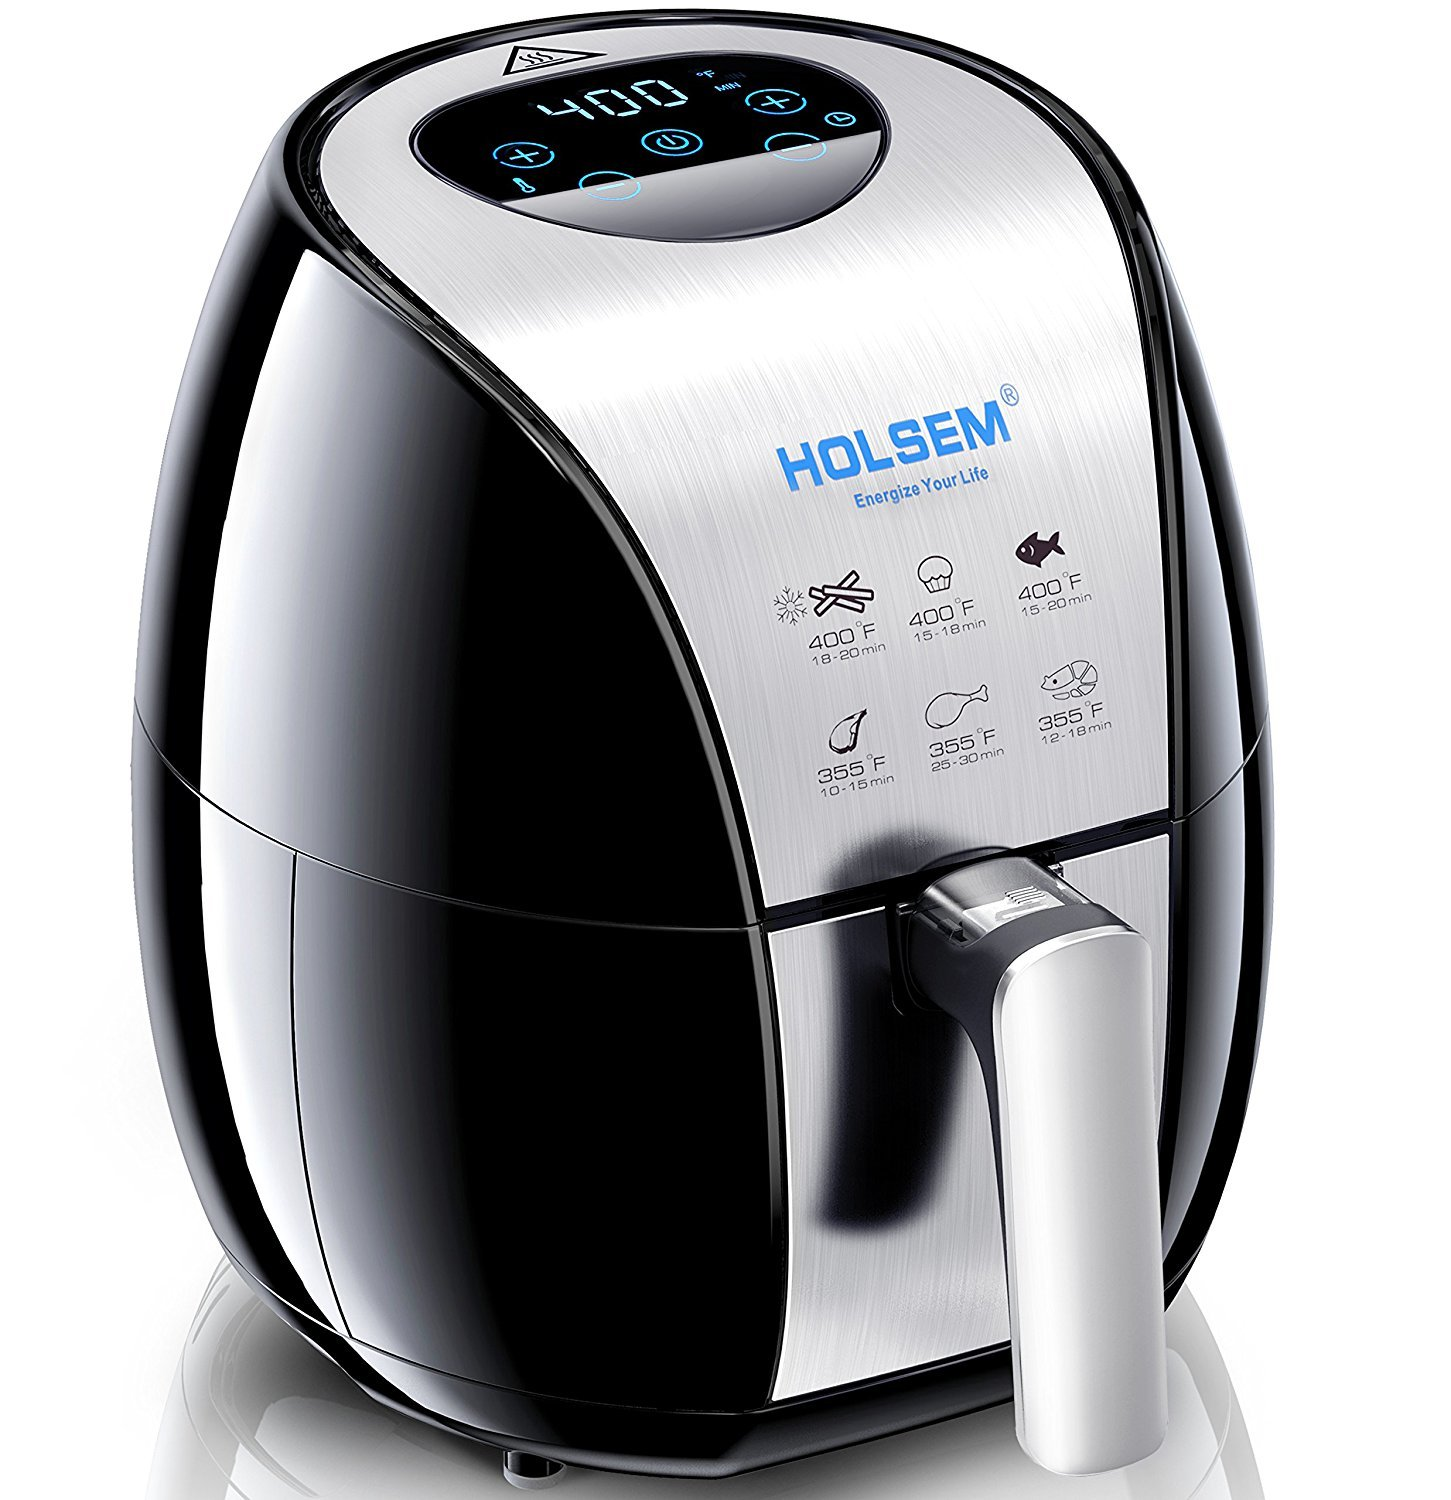 HOLSEM Air Fryer with Rapid Air Circulation System , 3.4 QT Capacity, Temperature up to 400°F, Low Fat Healthy Air Fryer, Black / Stainless Steel, 1500W (LED Display)